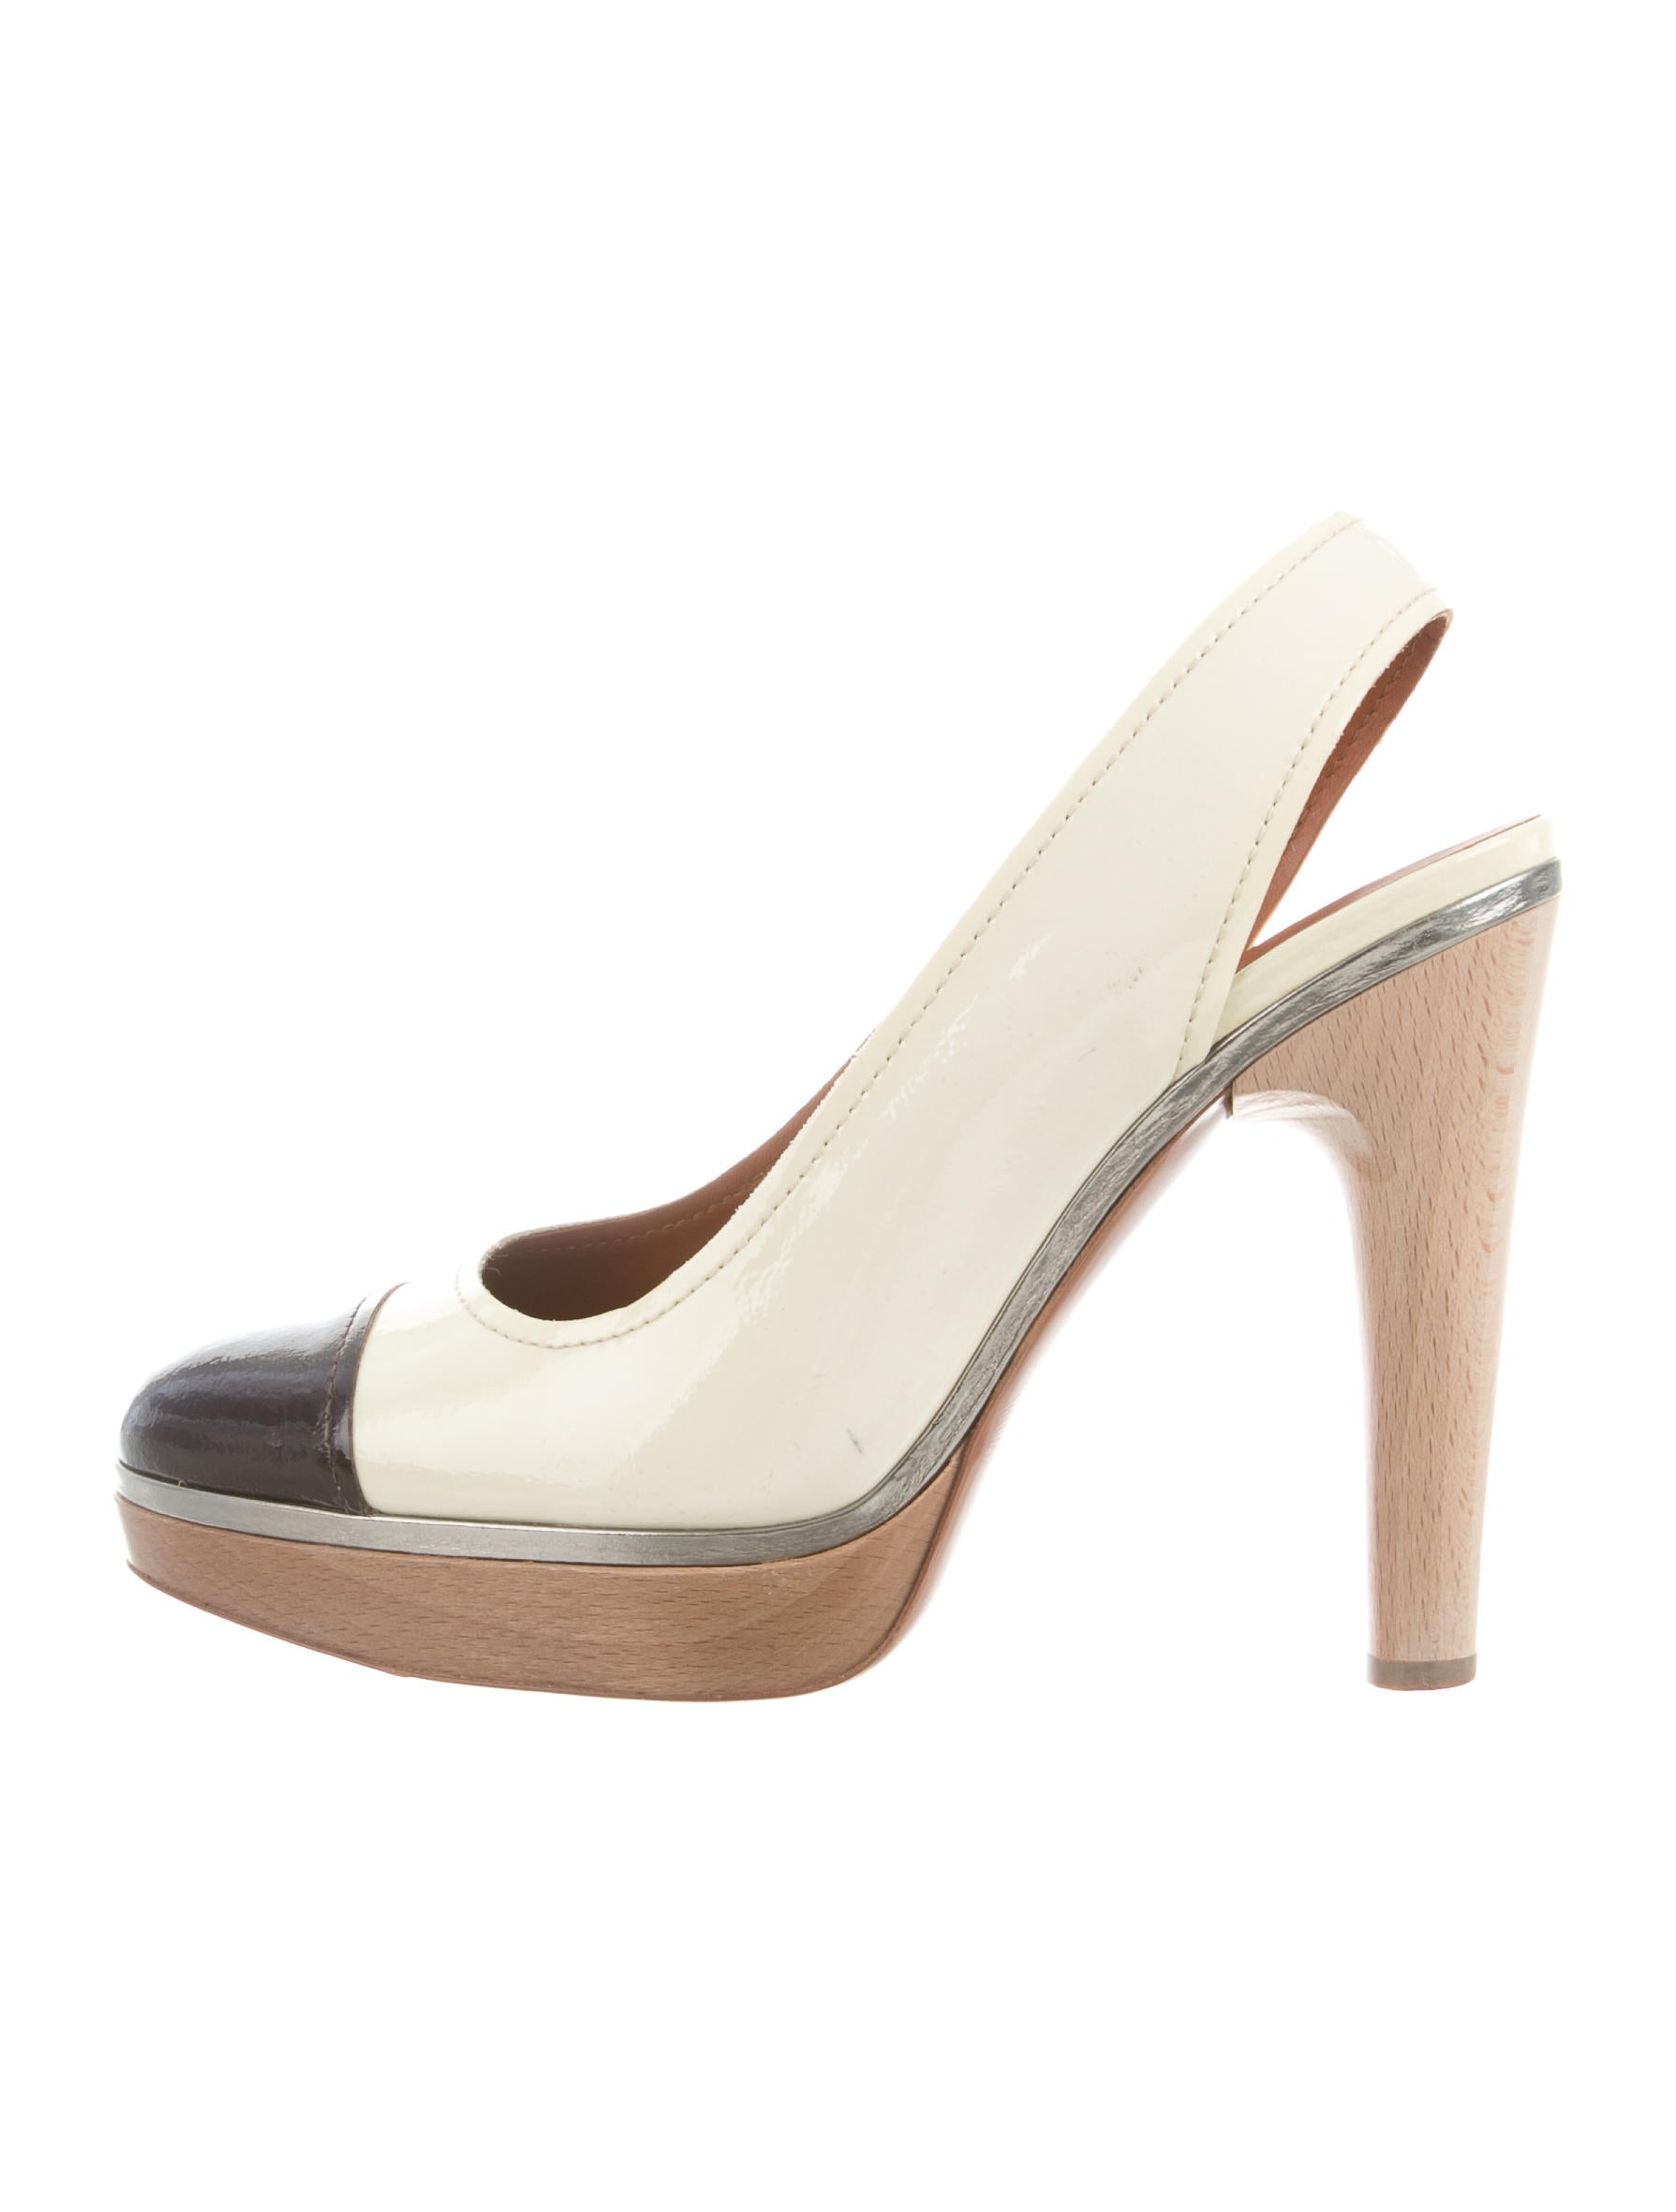 Lanvin Patent Leather Slingback Pumps outlet for nice ost release dates buy cheap pay with visa m1ZsCNbc2